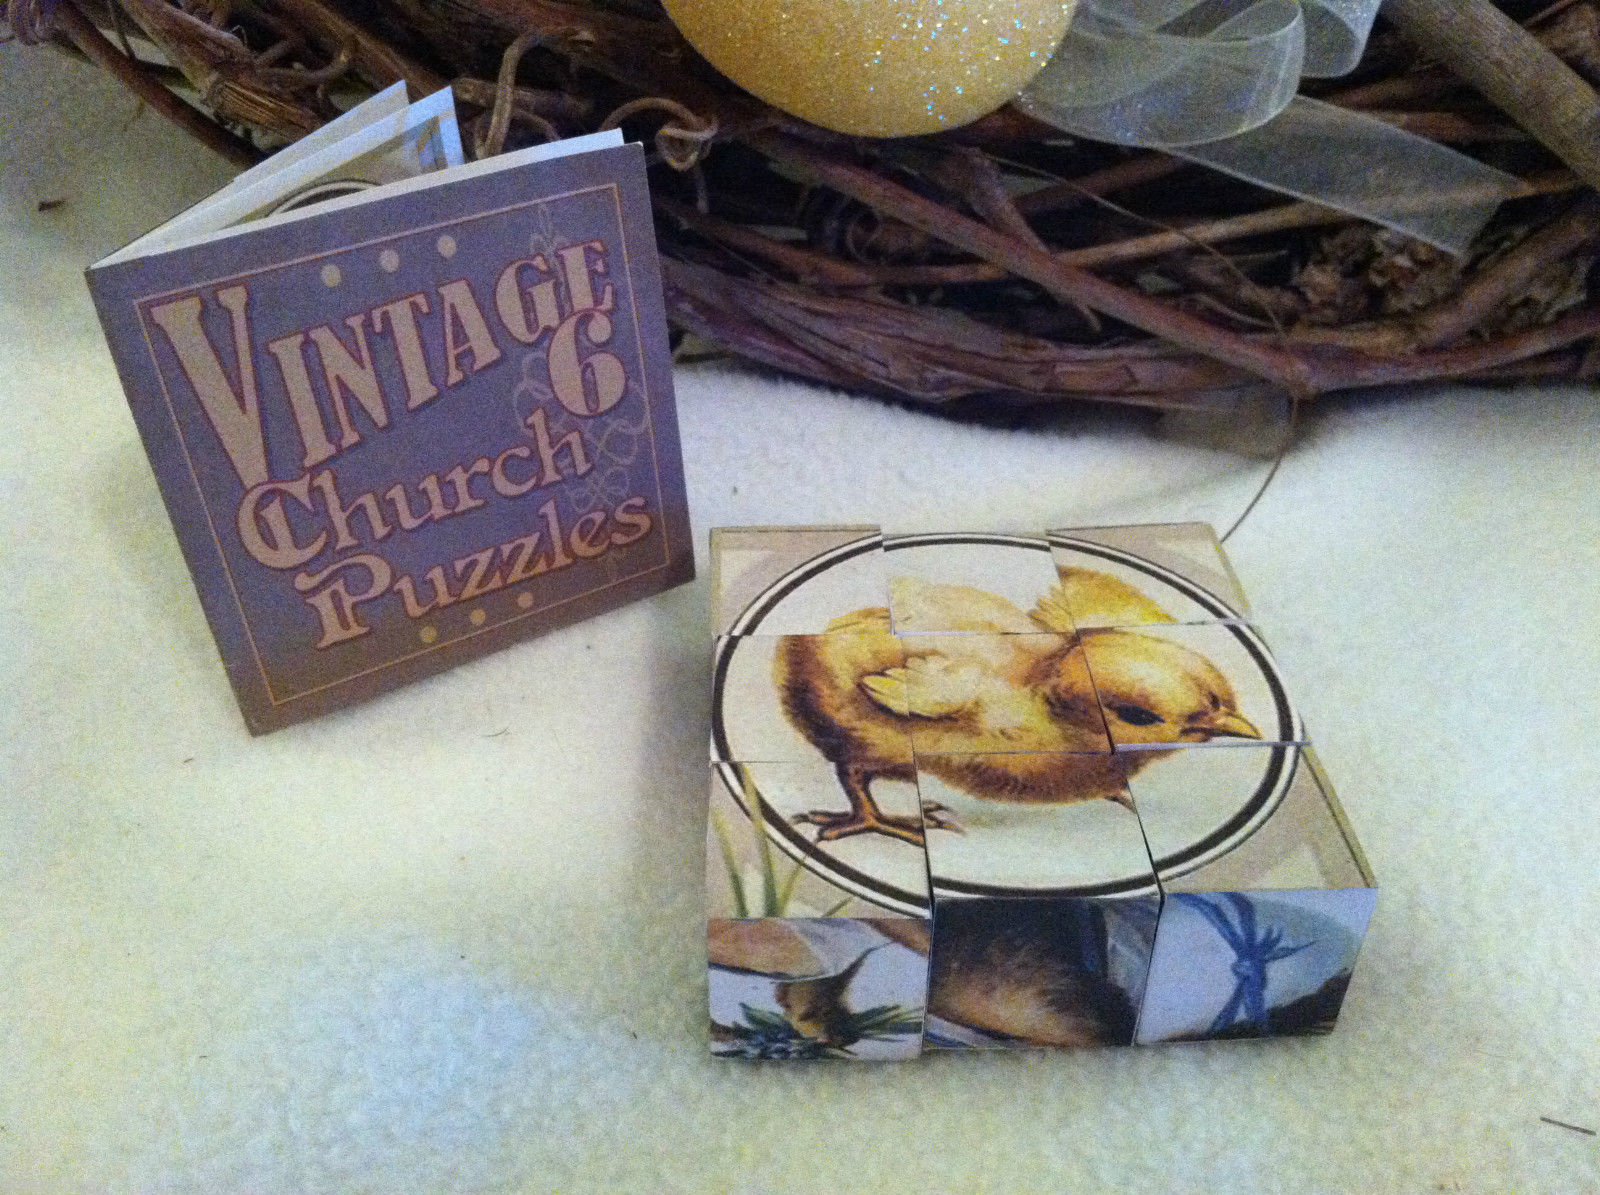 6 Sided Cube Vintage Church Puzzle - Spring chick bunny lamb Themed